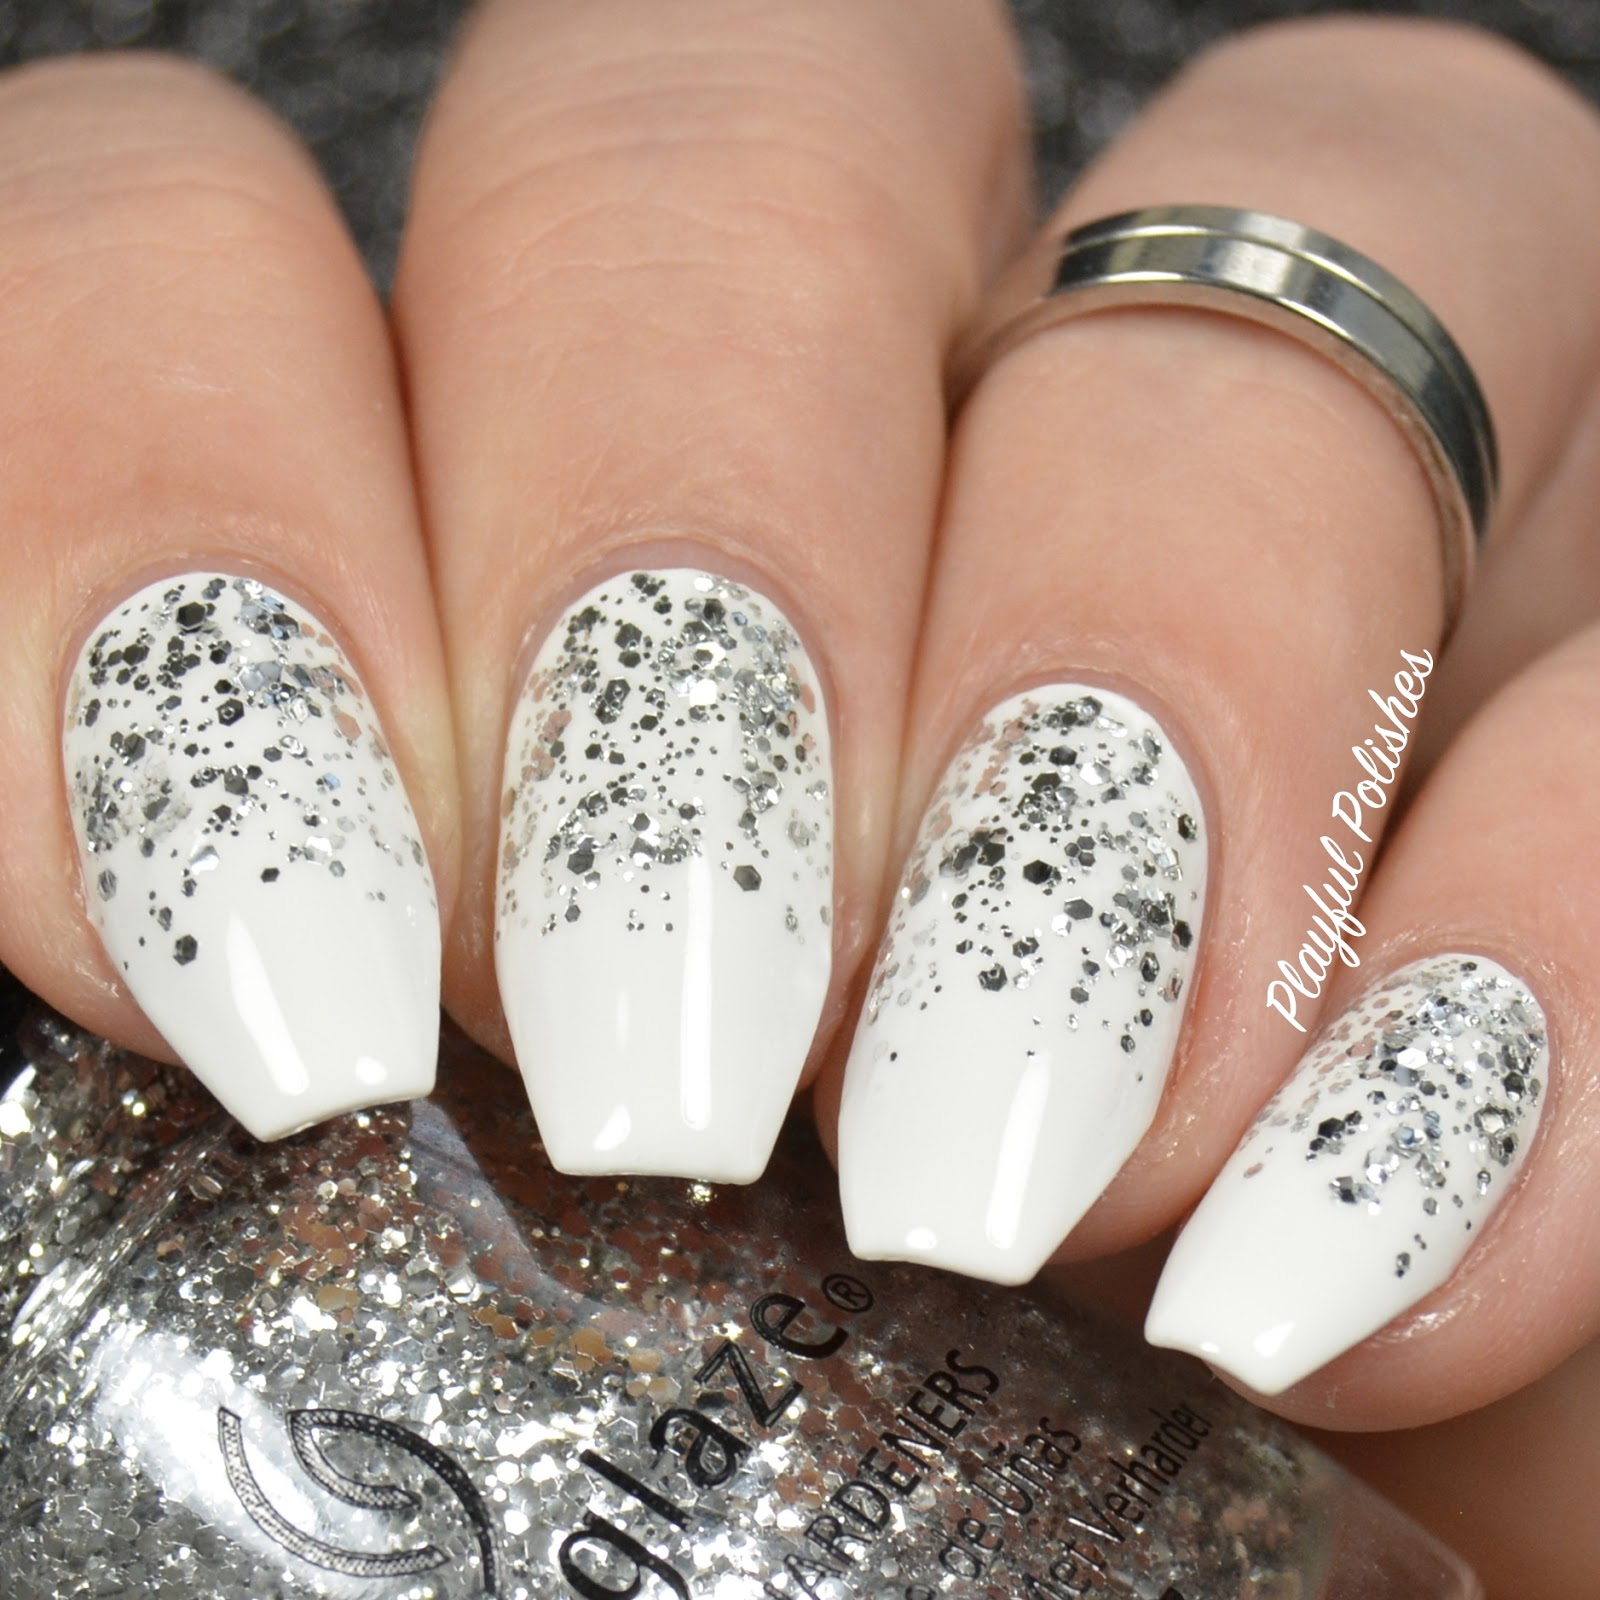 Nail Designs For New Years 2016 - Nail Ftempo